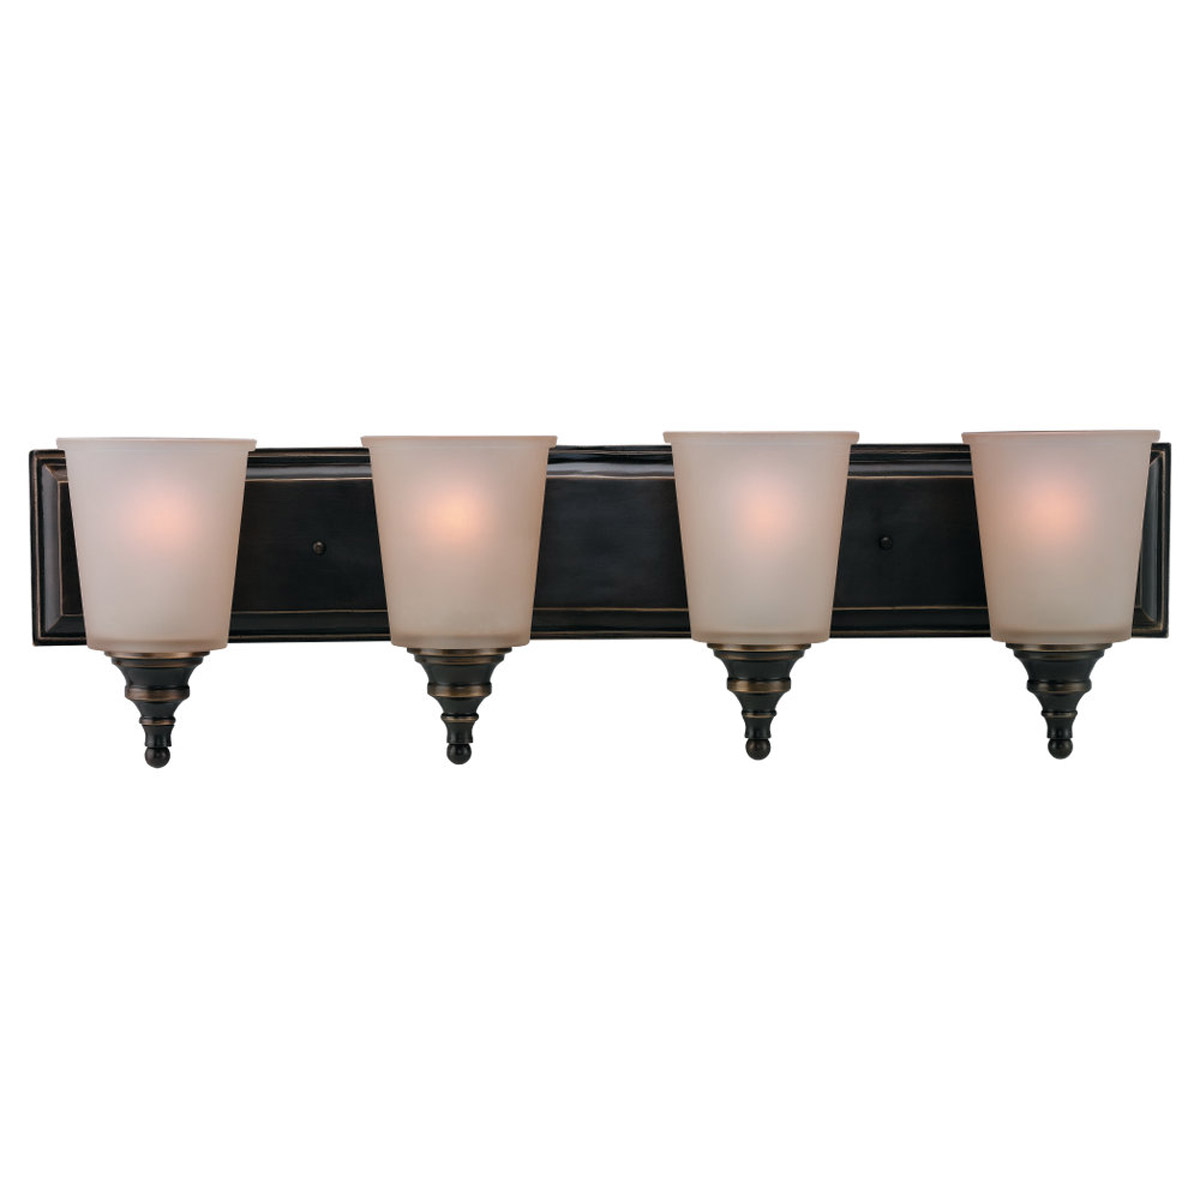 Sea Gull Lighting Warwick 4 Light Bath Vanity in Vintage Bronze 44332-825